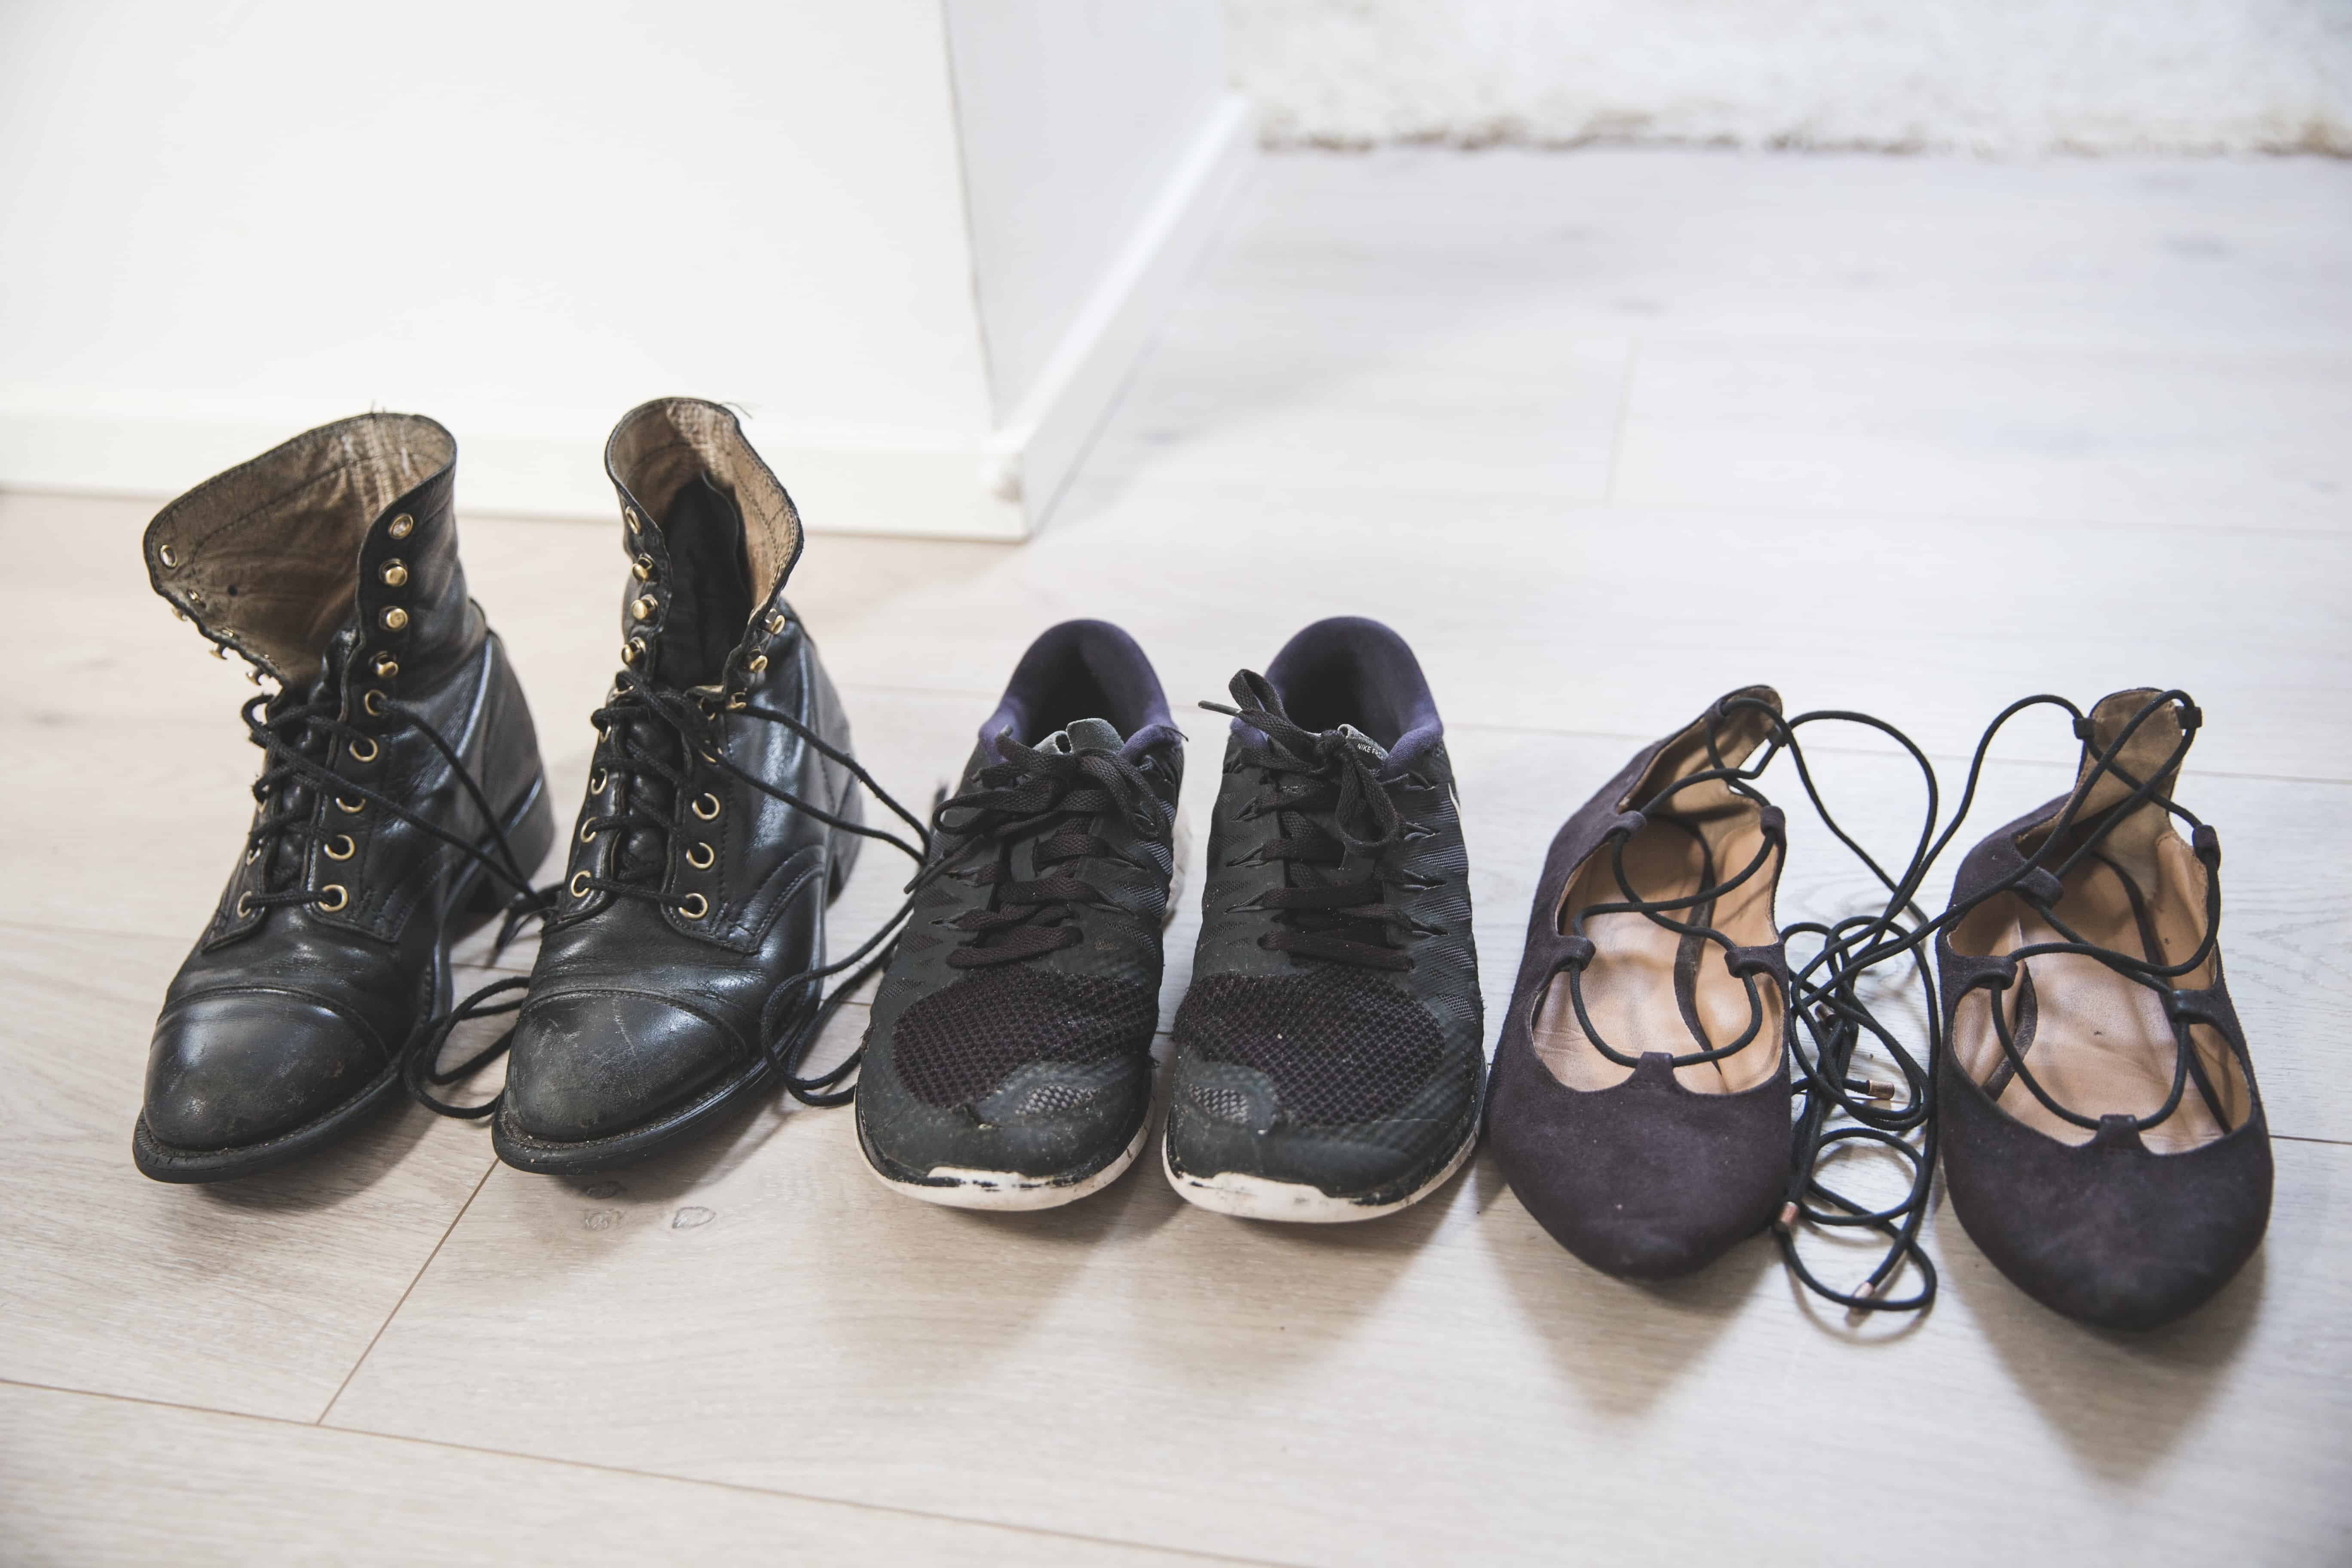 The three pairs of shoes that I brought for winter in Europe: lace up black waterproof boots, black Nike sneakers, and lace up black flats